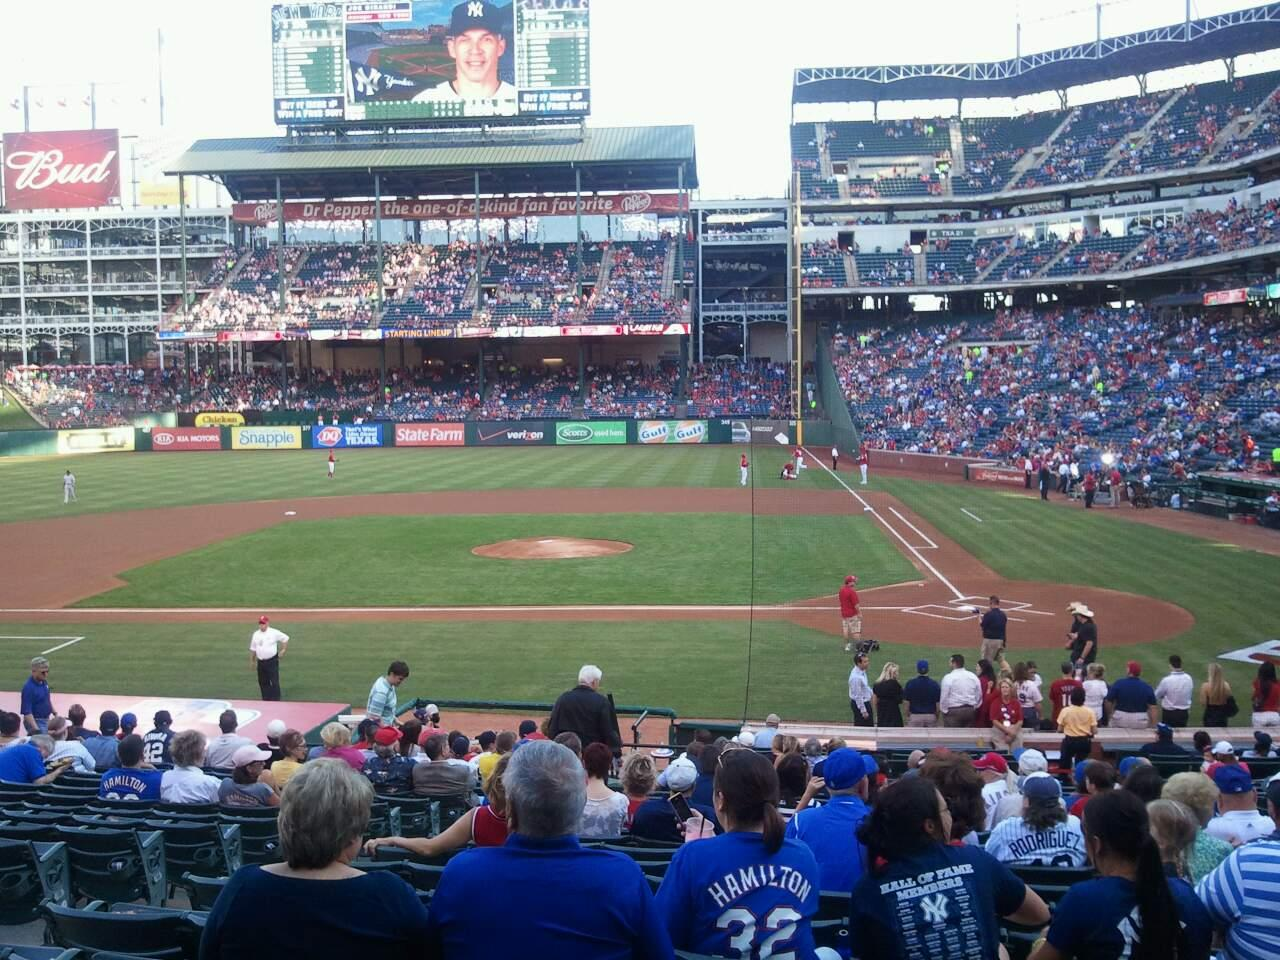 Globe Life Park in Arlington Section 21 Row 22 Seat 6